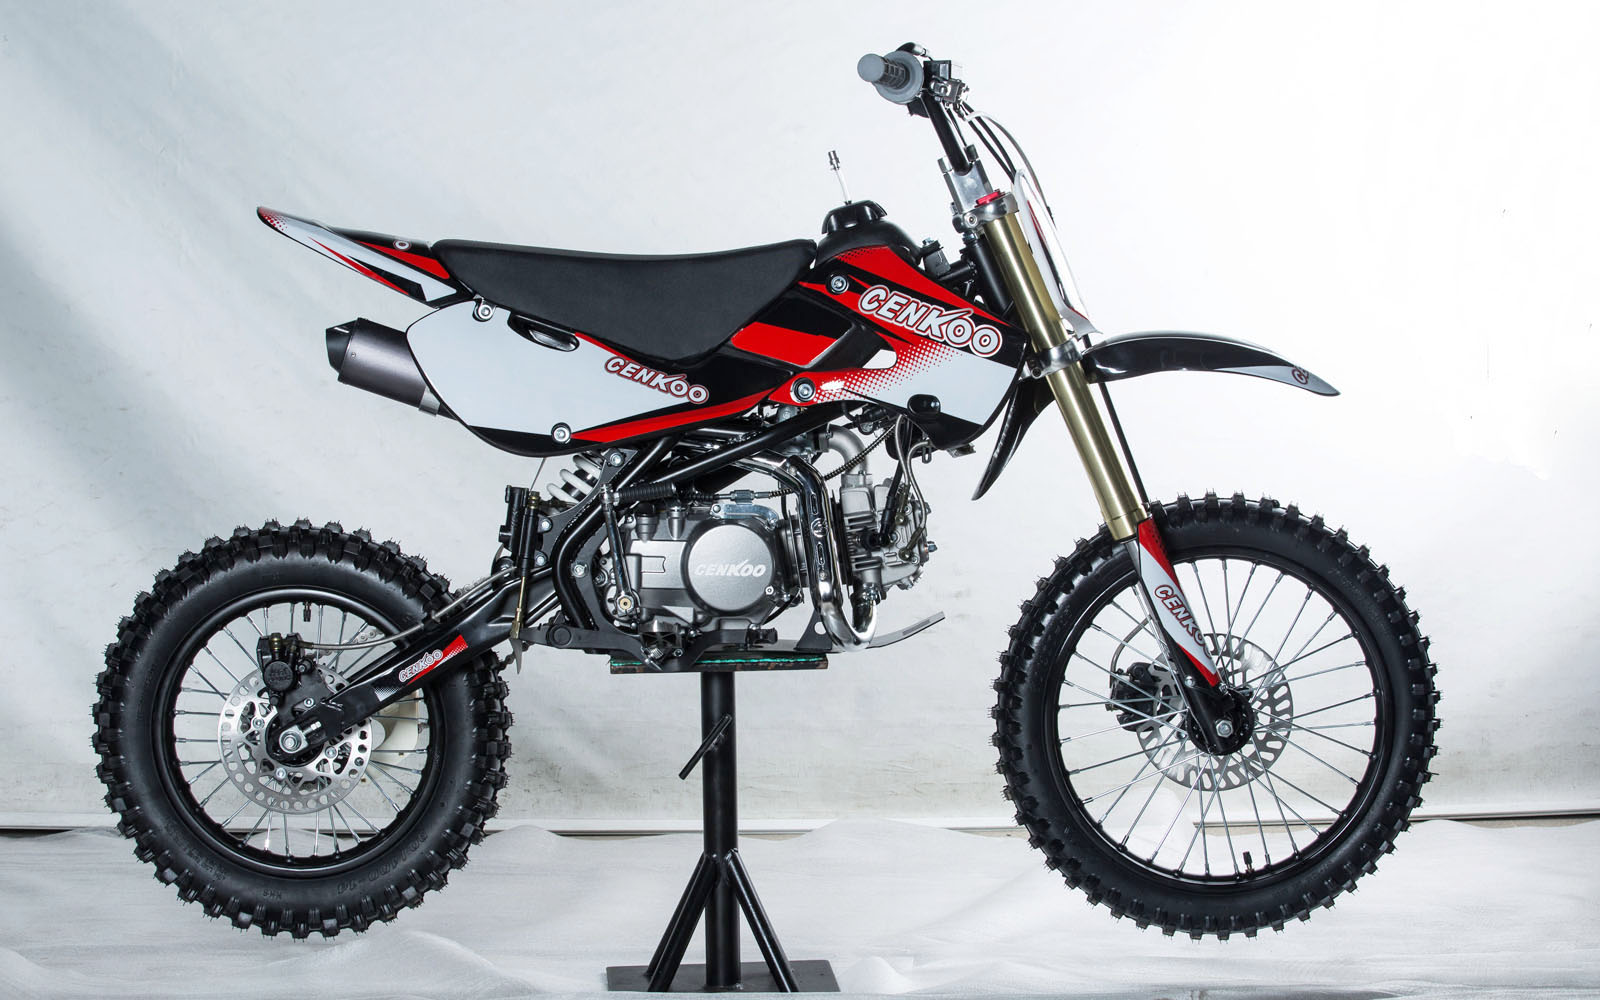 cenkoo cenkoo 140 140cc 17 14 cross dirt bike pit bike. Black Bedroom Furniture Sets. Home Design Ideas